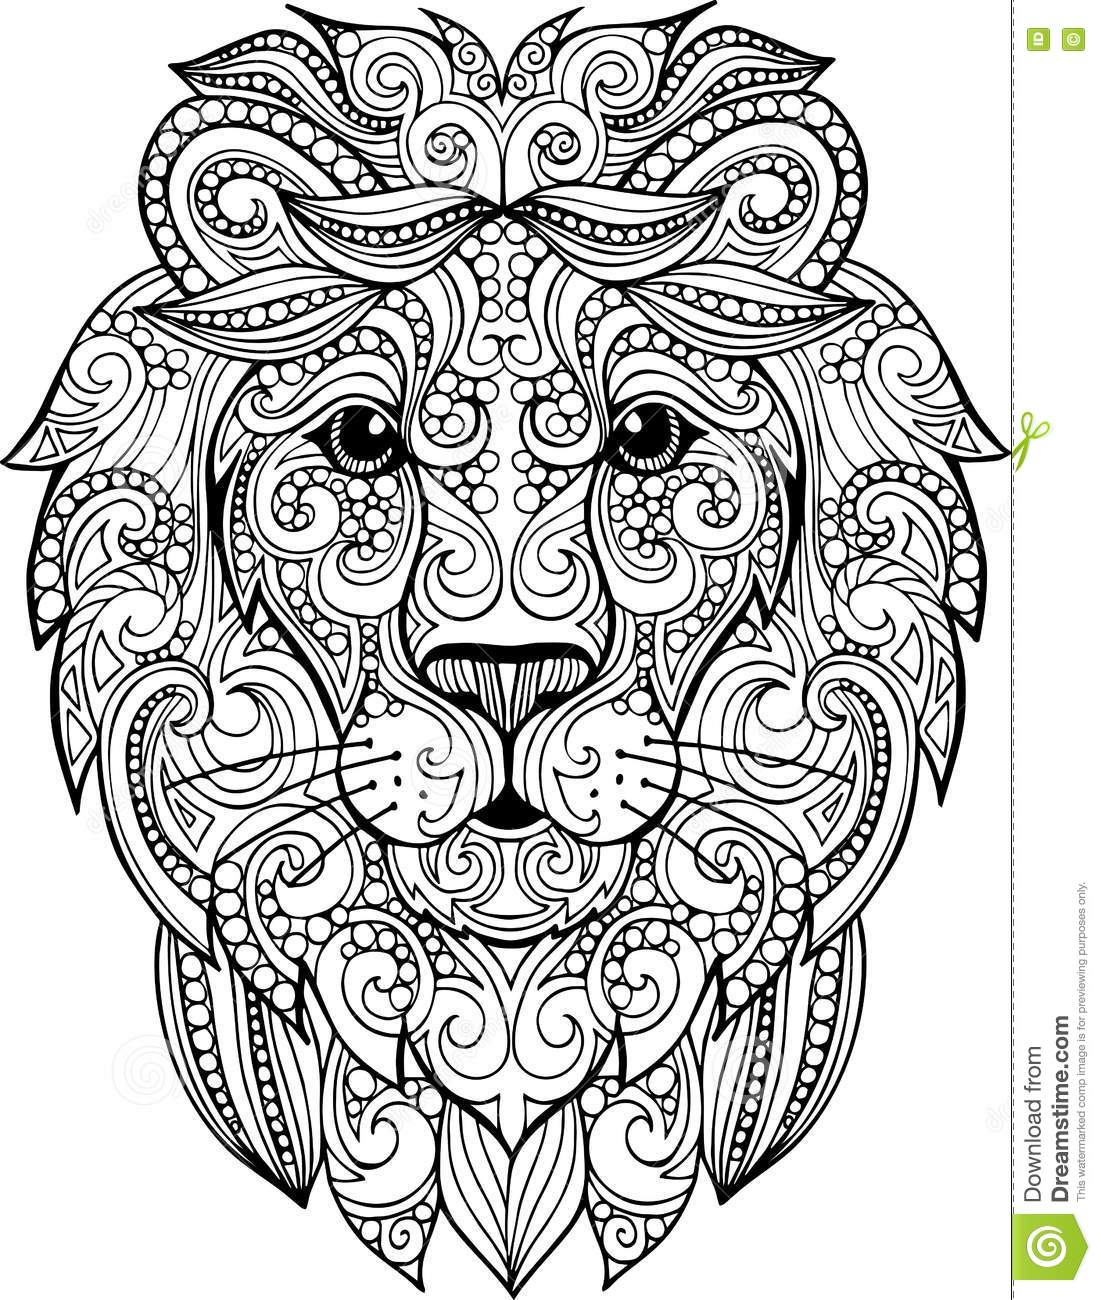 v1p003 foliated initial letter s q90 818x970 in addition m11a additionally mandala circular simétrica del modelo 69064600 furthermore  further add characters pg 11 additionally free printable coloring pages advanced dragons 1024x689 in addition  additionally free abstract pattern coloring page large in addition  moreover  as well animal mandala coloring pages animal jr1. on celtic coloring pages m free printable adult